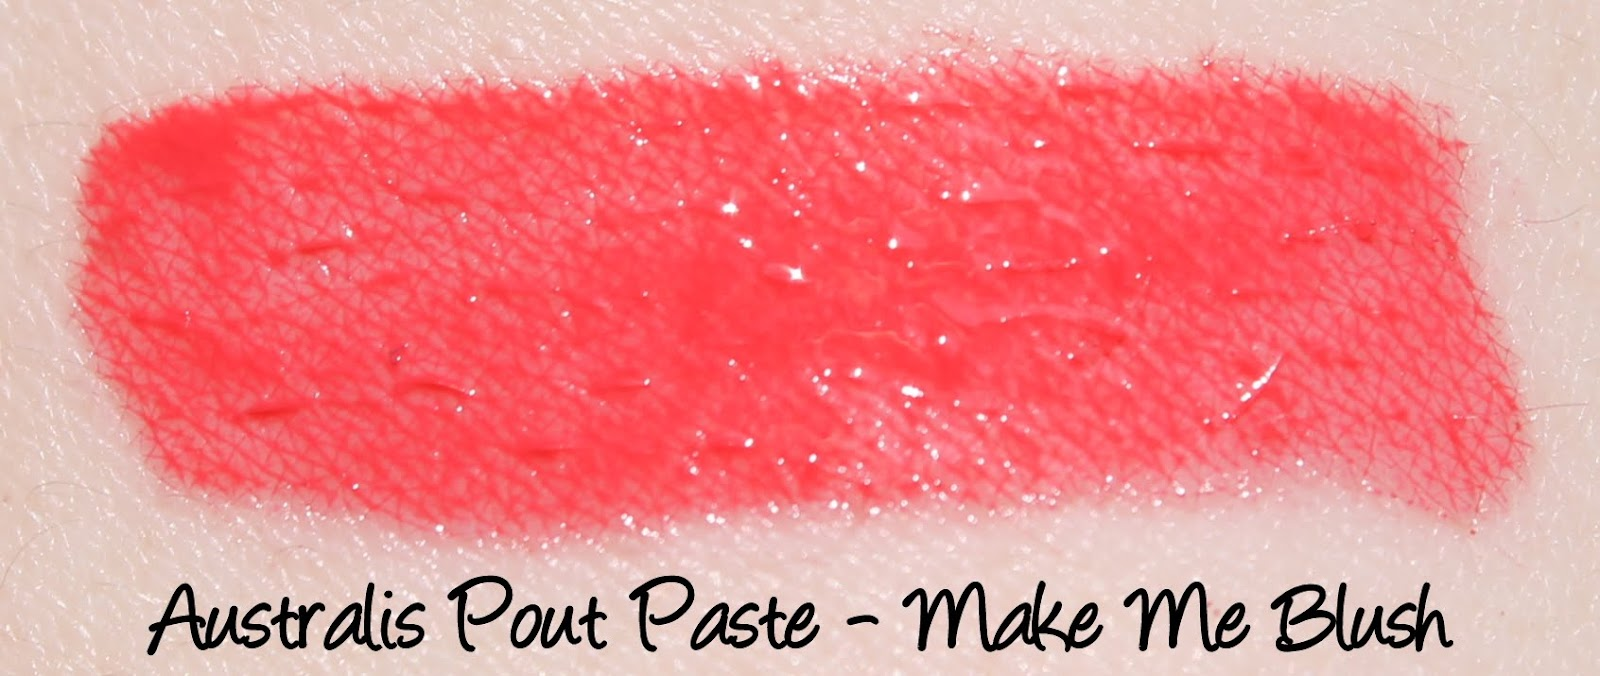 Australis Pout Paste - Make Me Blush Swatches & Review